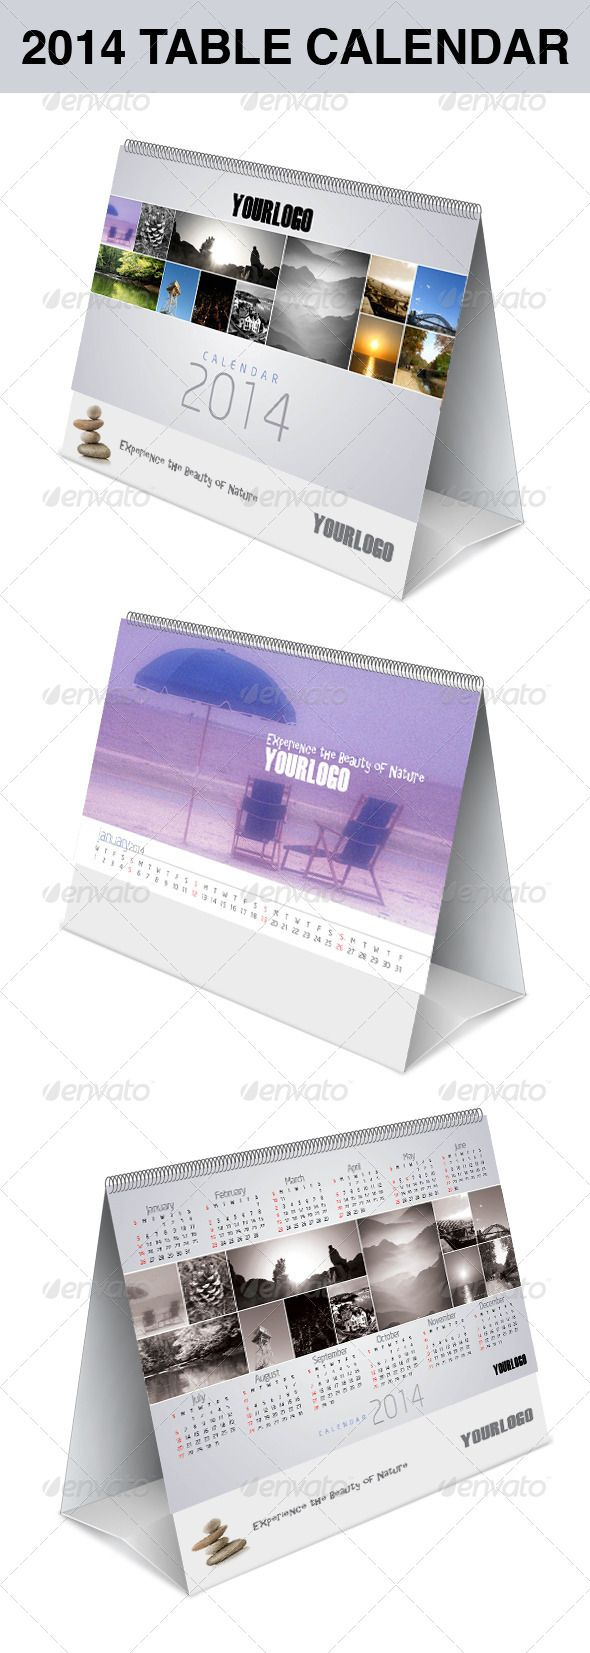 2014 table calendar  #GraphicRiver         creative 2014 table calendar  	 Size: 10×6.125 inches  	 Worked in: InDesign CS5 Included in the zip file you will also find an InDesign CS4 (Idml), with base design.  Fonts used: neosans font family  .ulozto /xzjgAU7K/neo-sans-font-family-rar 	 Times new roman regular system font  	 All colors and text are easily customizable. All paragraph styles are properly named. Images area divided in 50% black color layers to help customize each one easily…